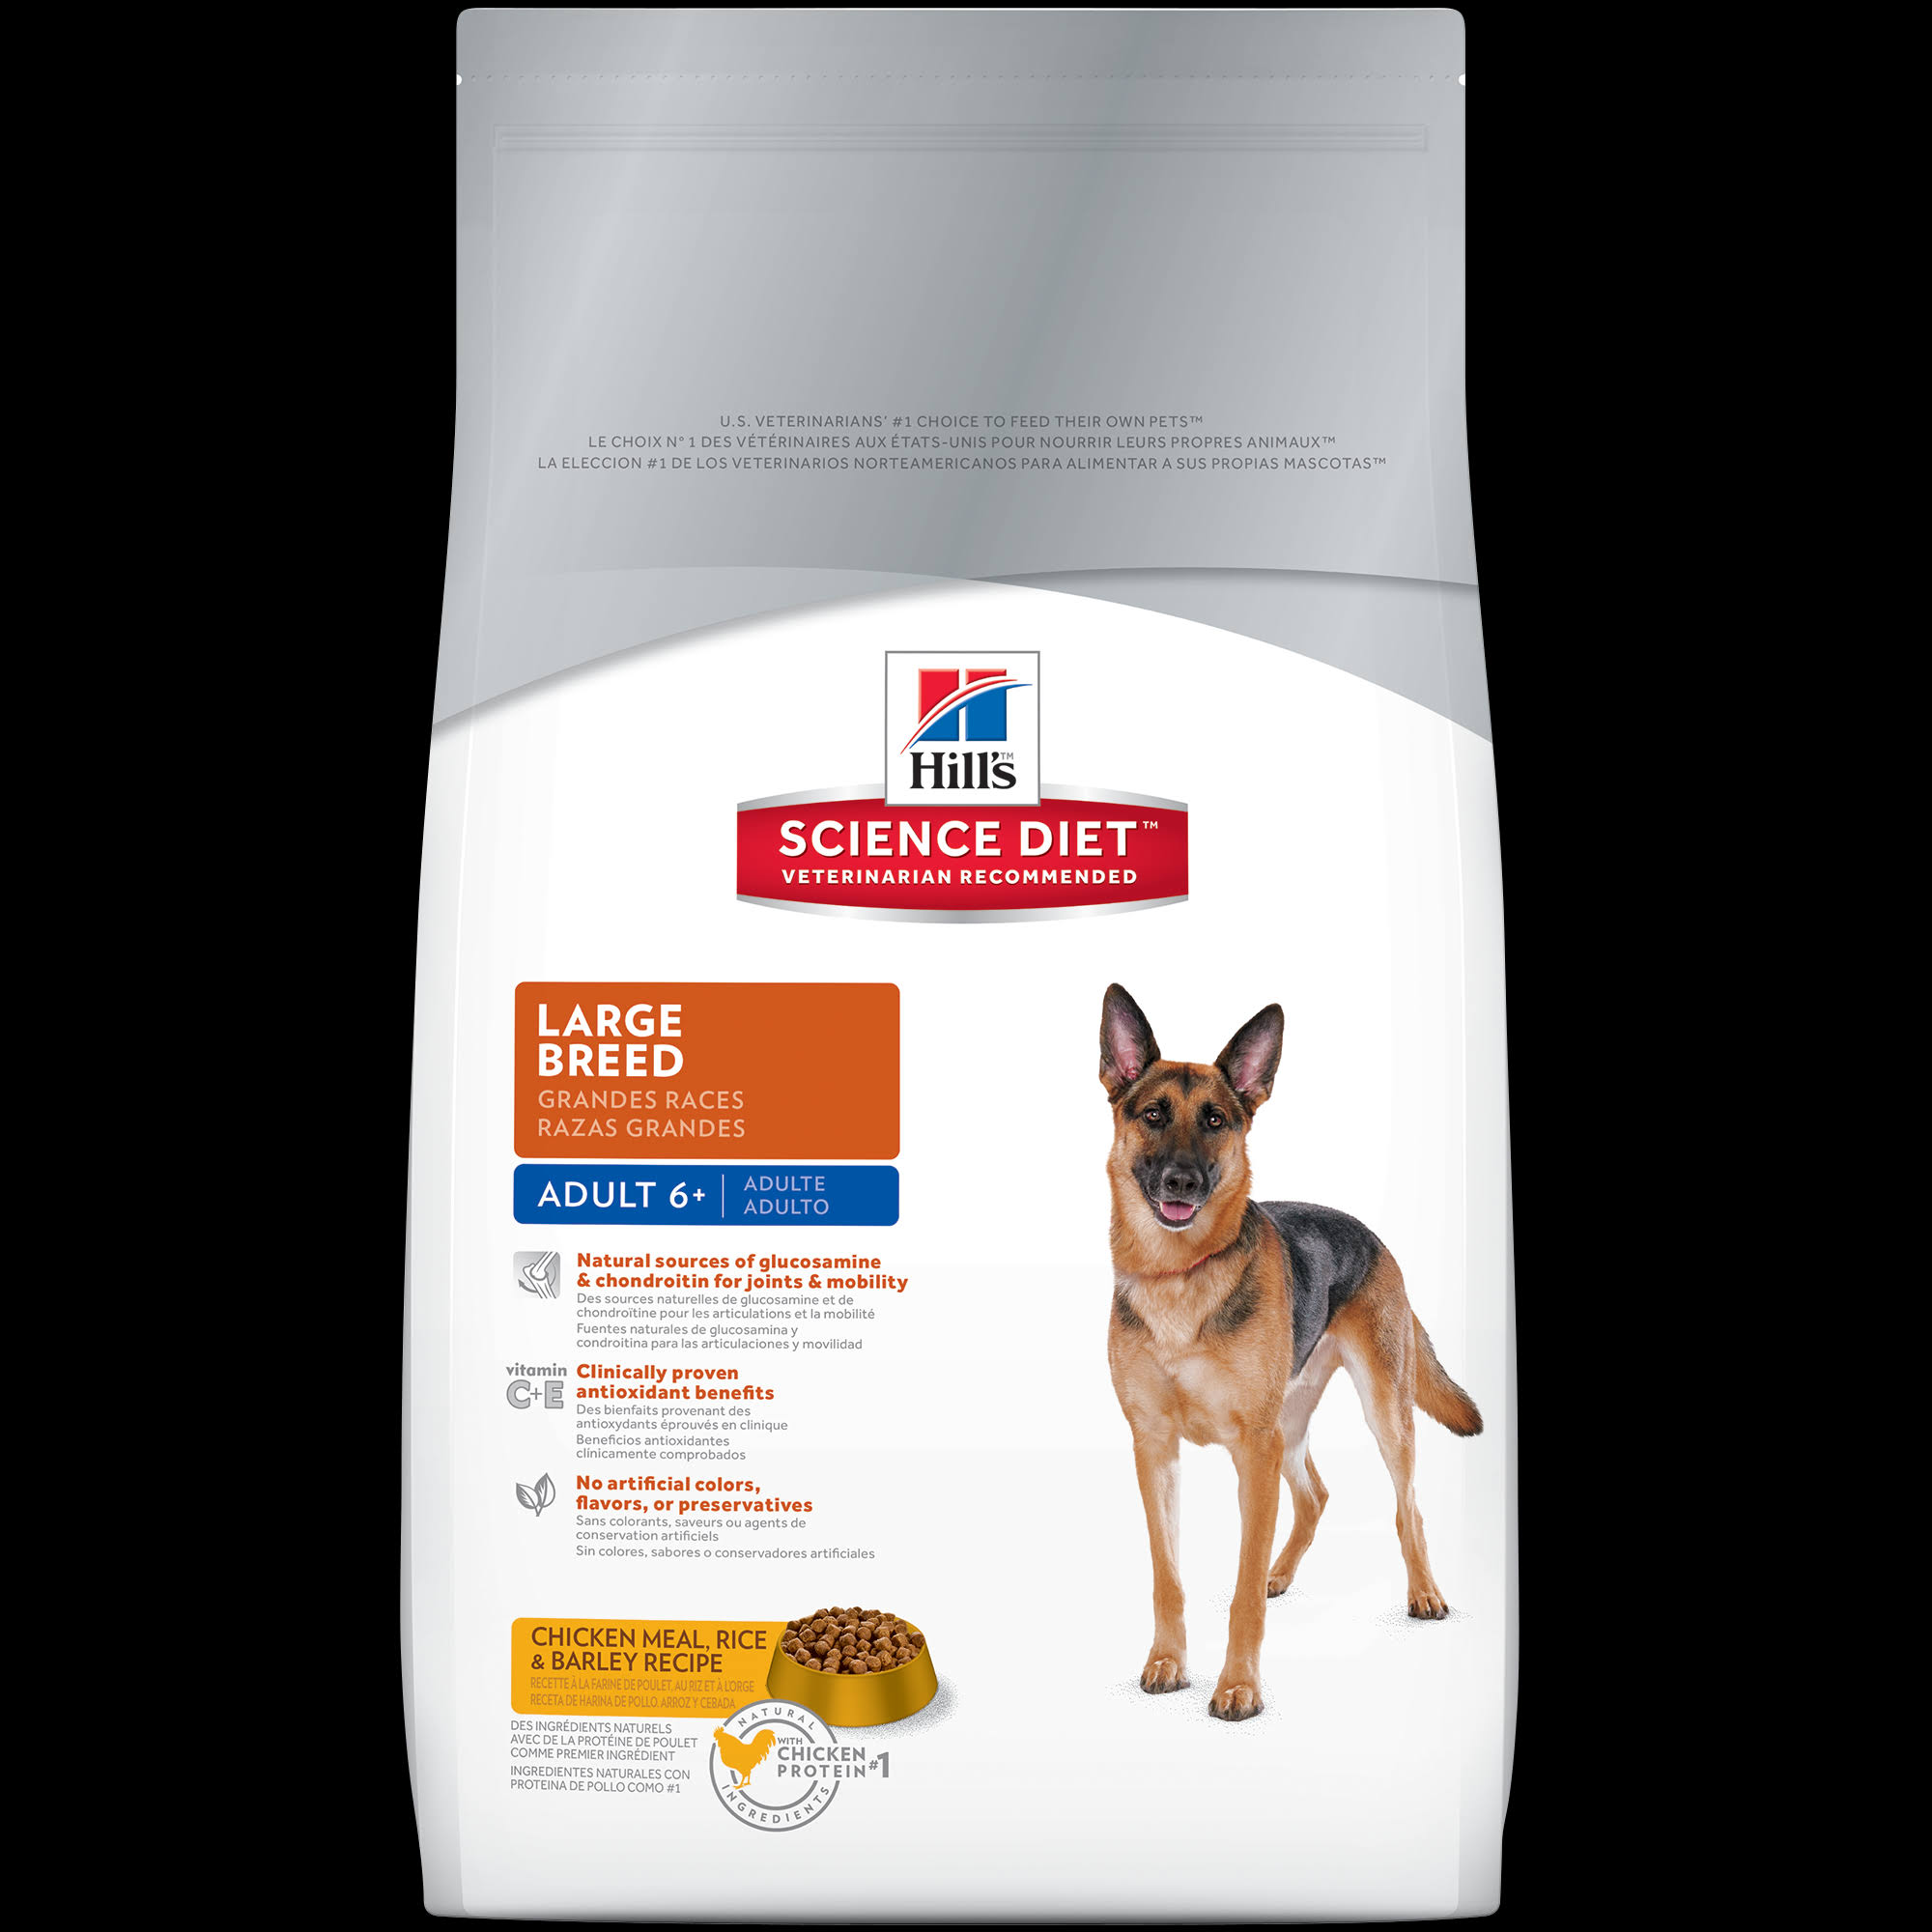 Hill's Science Diet Large Breed Premium Natural Dog Food - Chicken Meal, Rice and Barley Recipe, 33lb